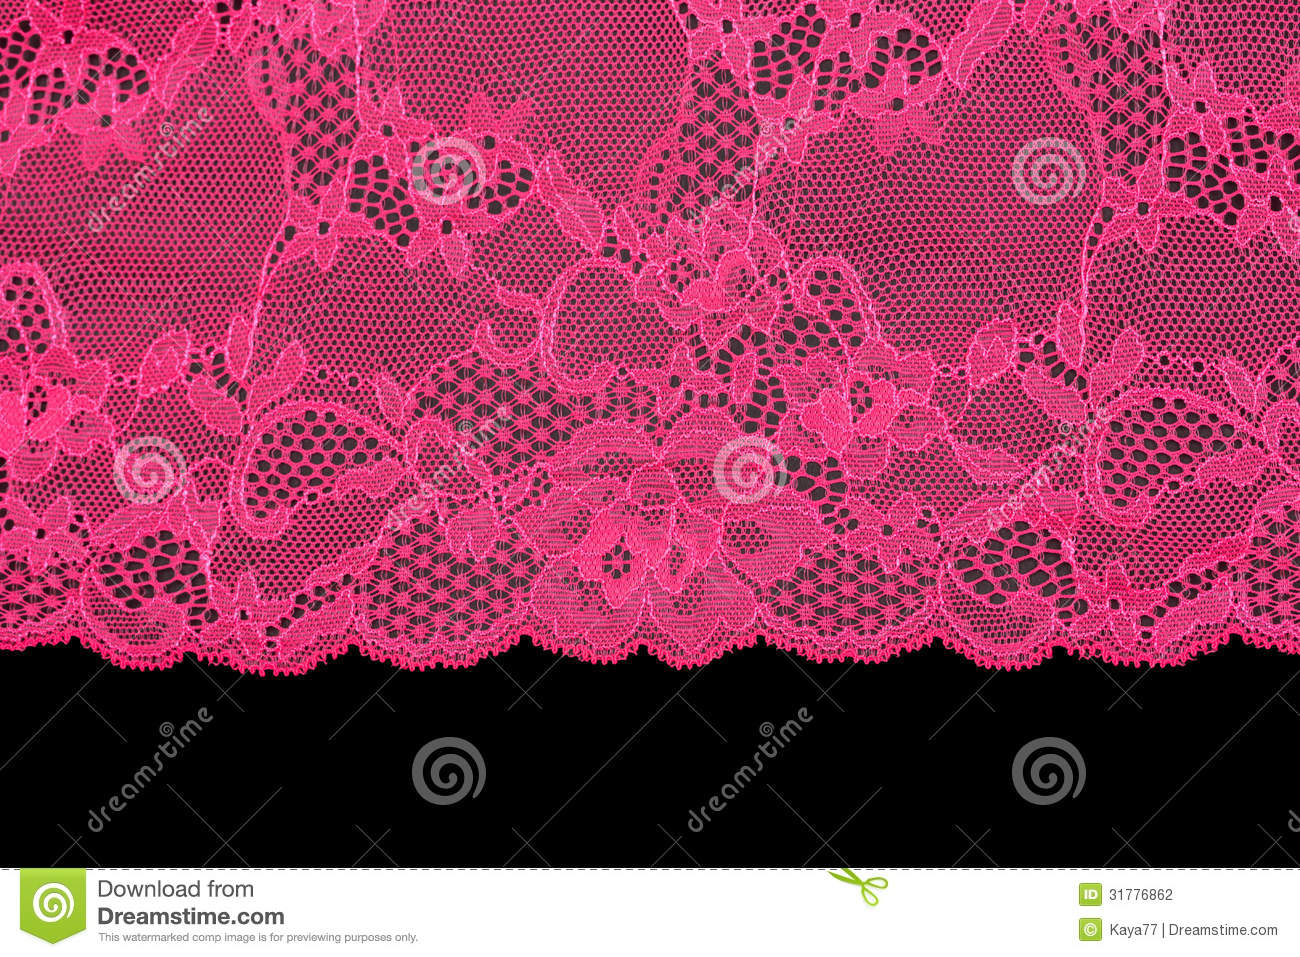 Pink Lace Over Black Background Stock Photo - Image of ...